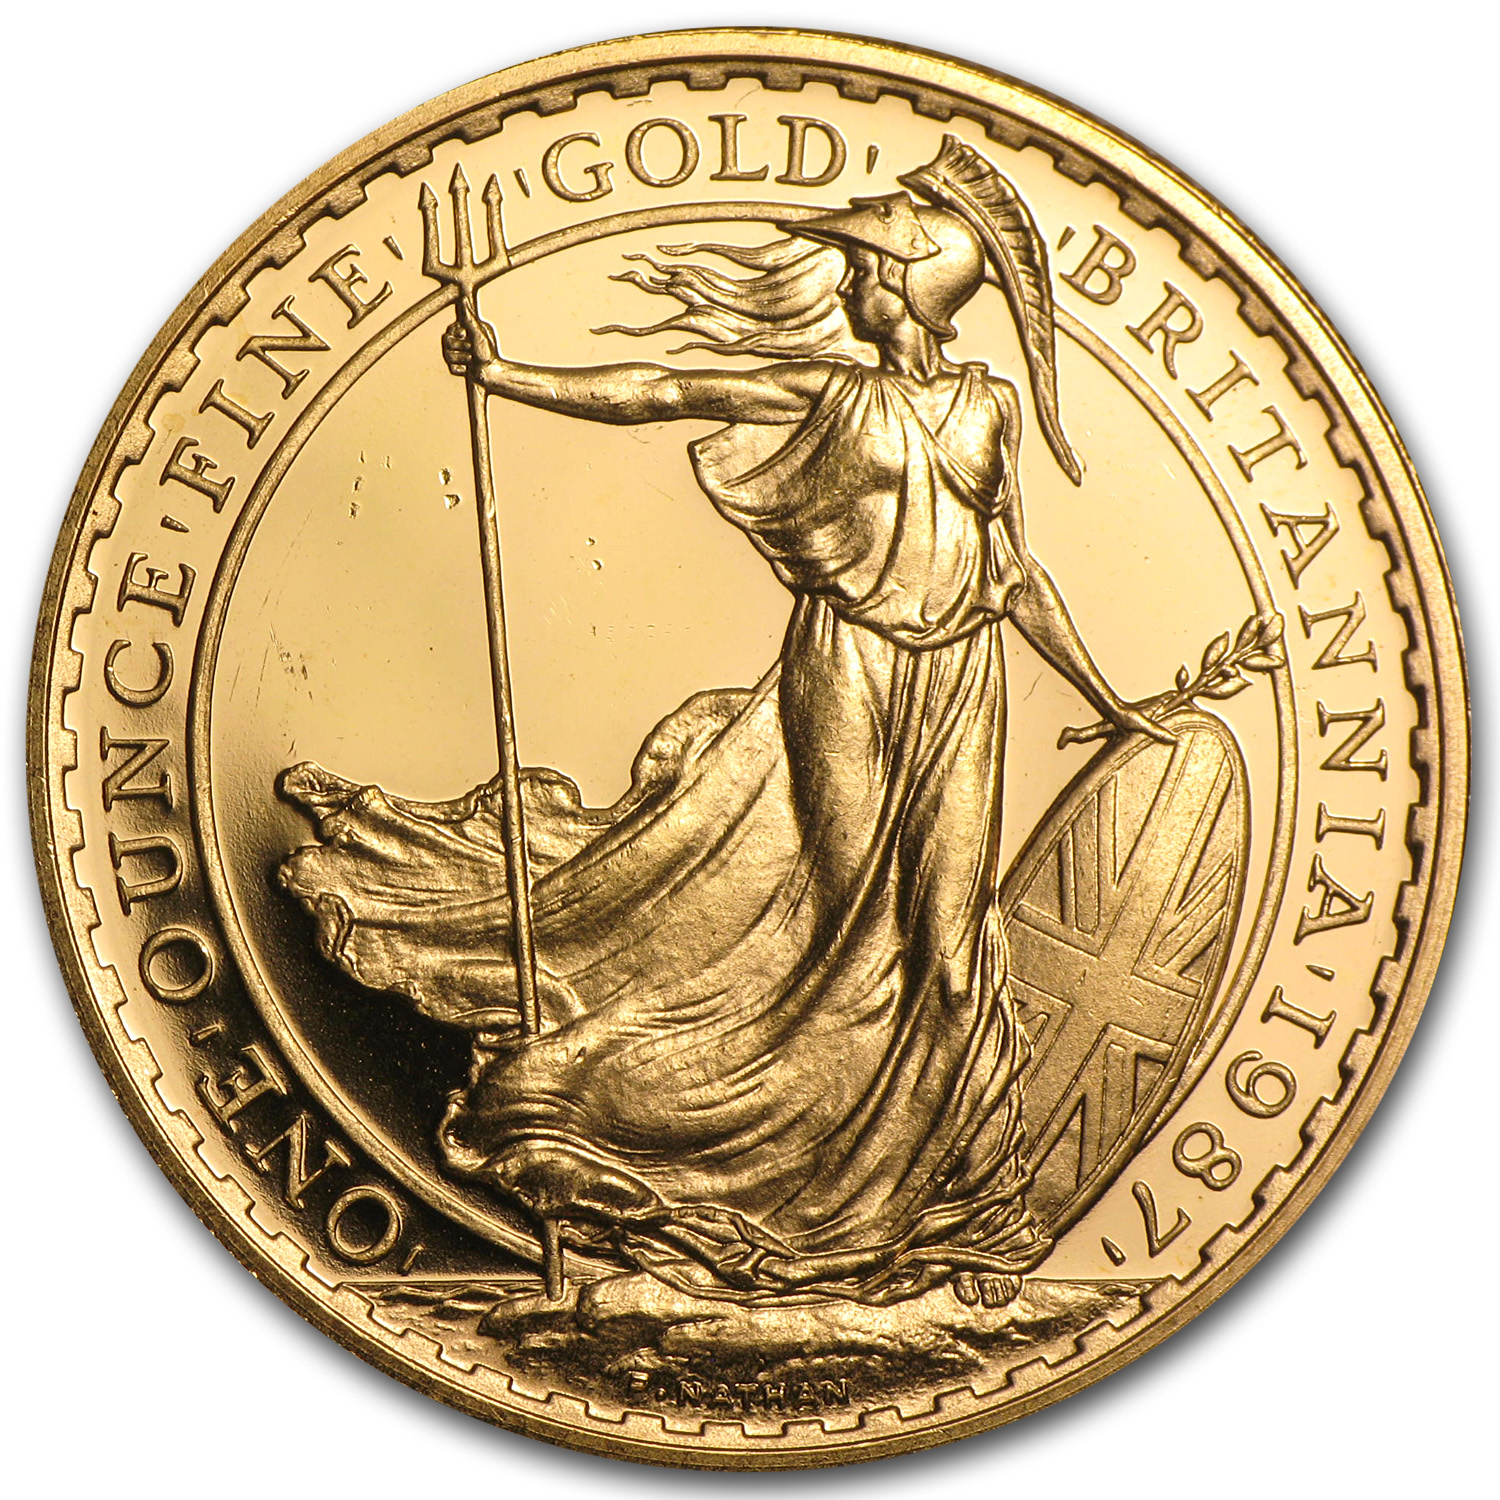 1 oz Gold Britannia BU/Proof (Scruffy)